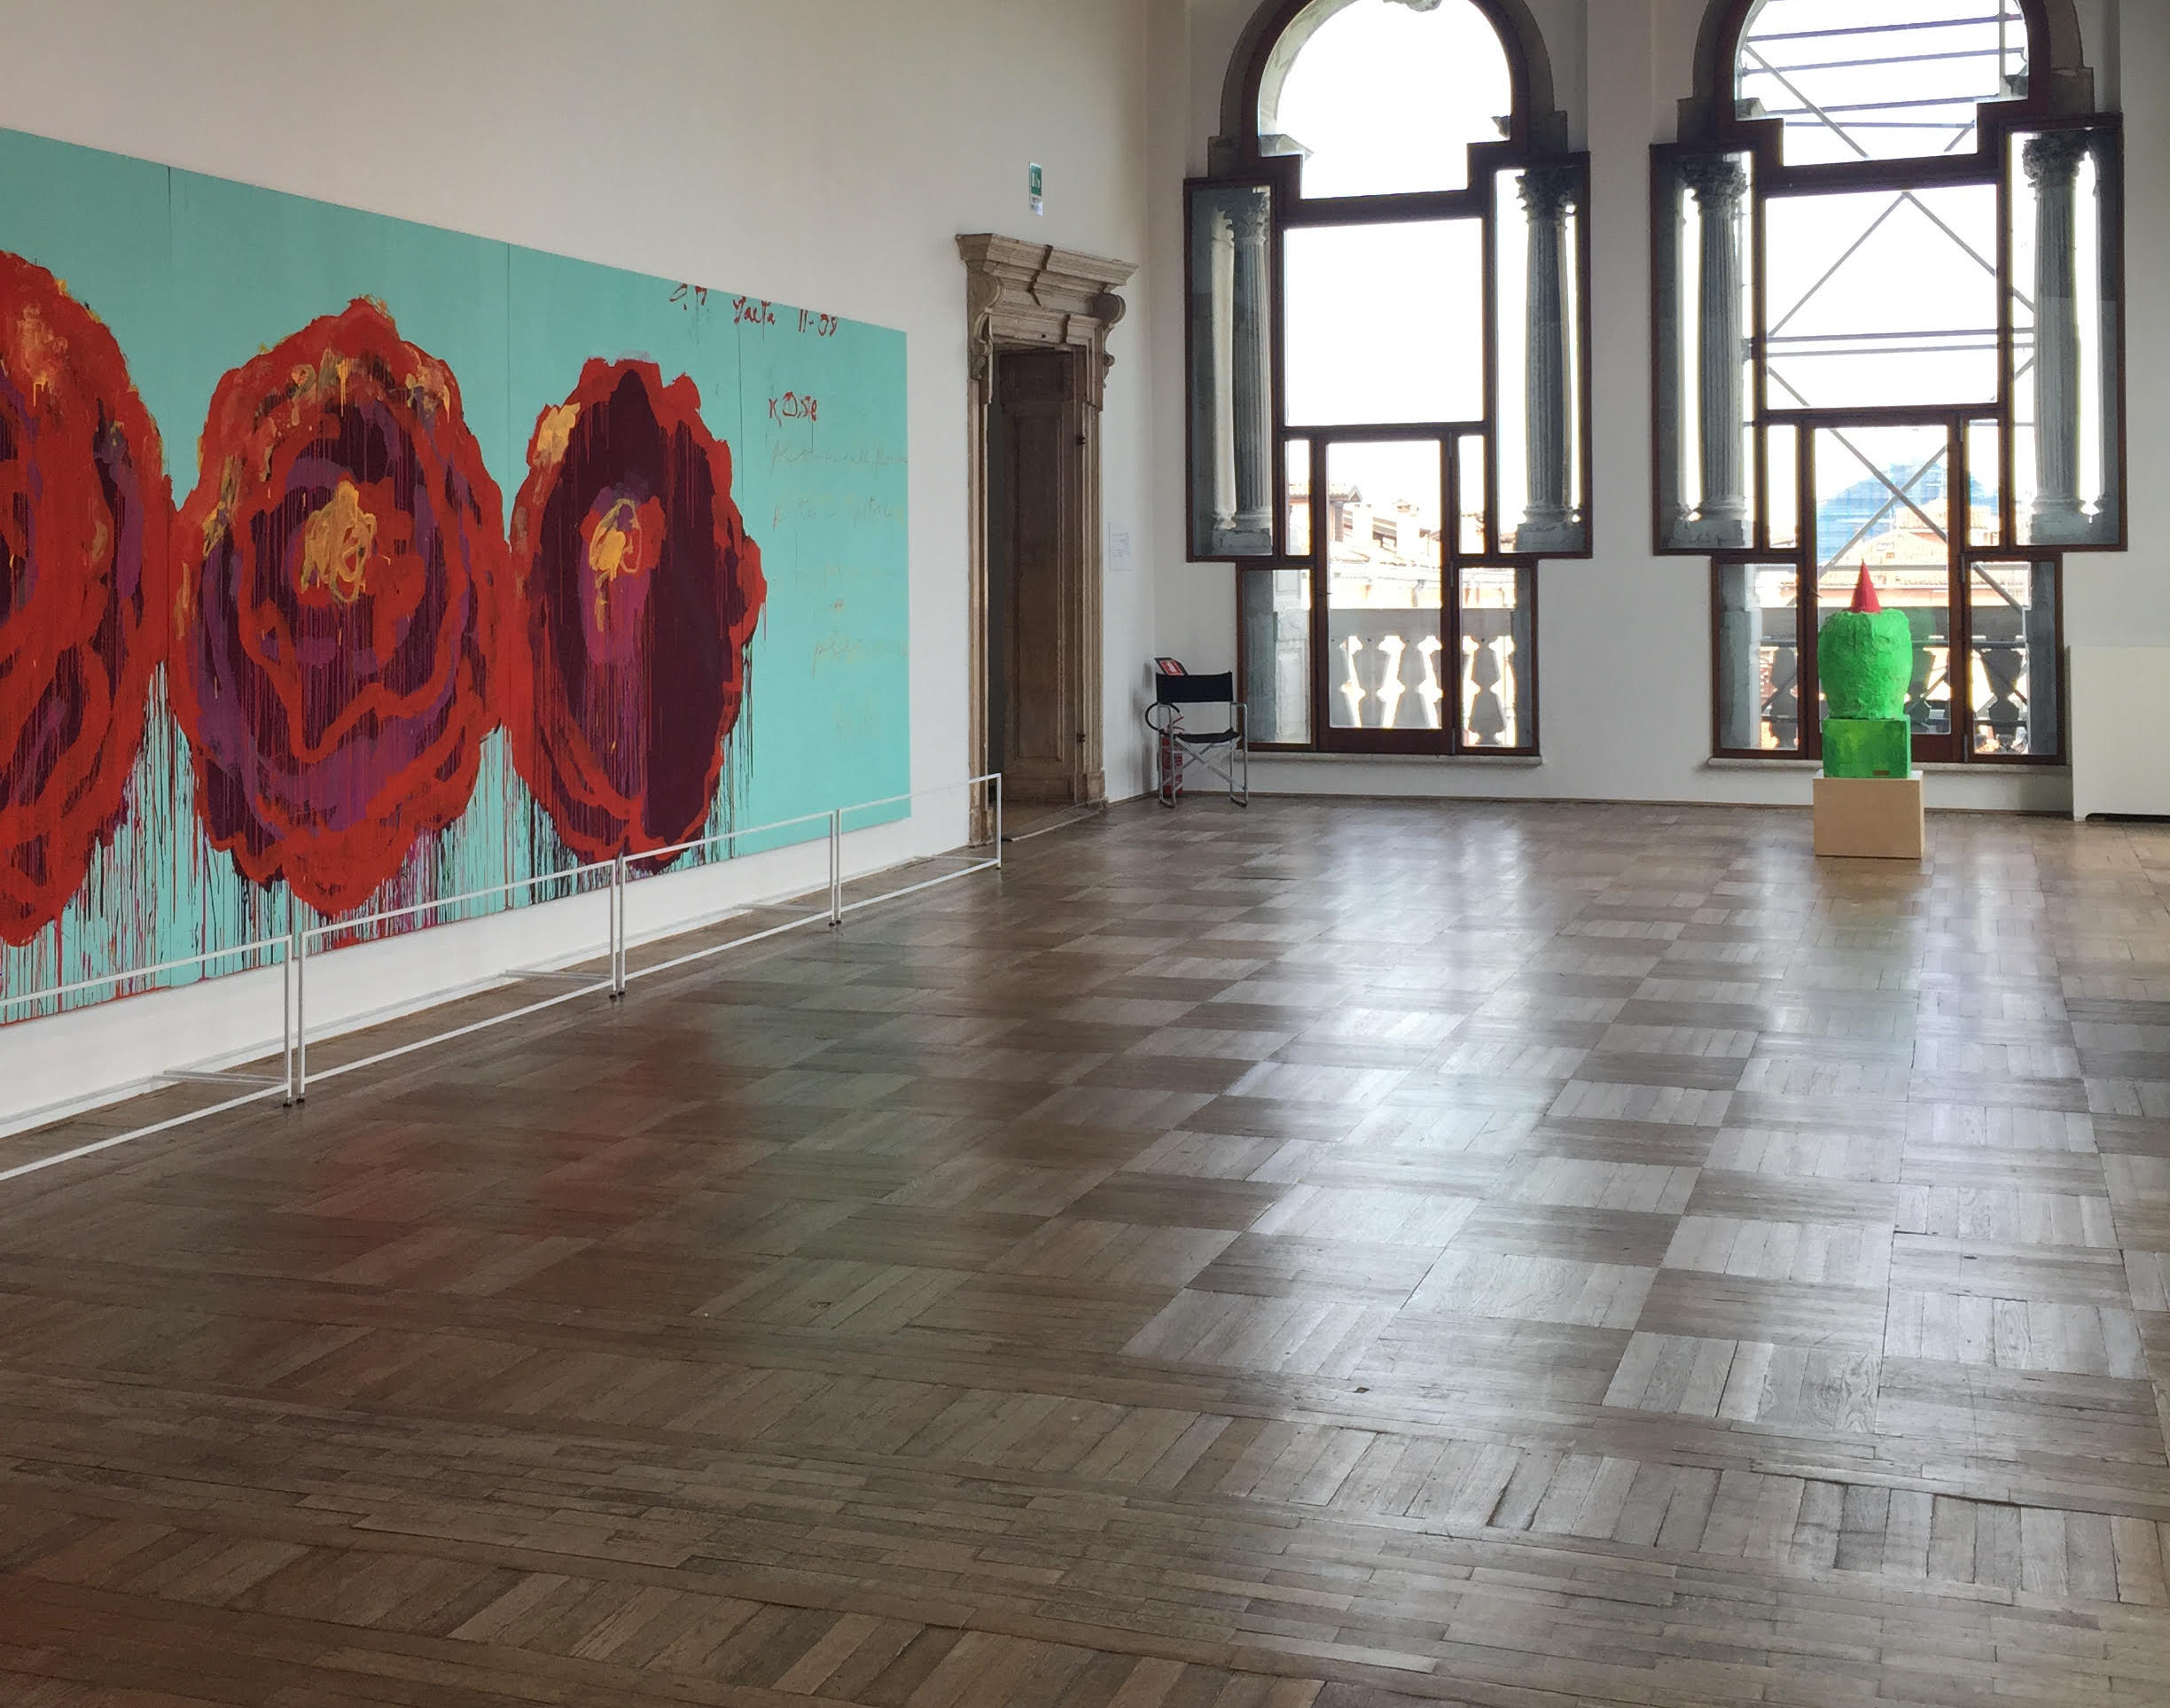 Cy Twombly - six decades of work presented by the Twombly Foundation